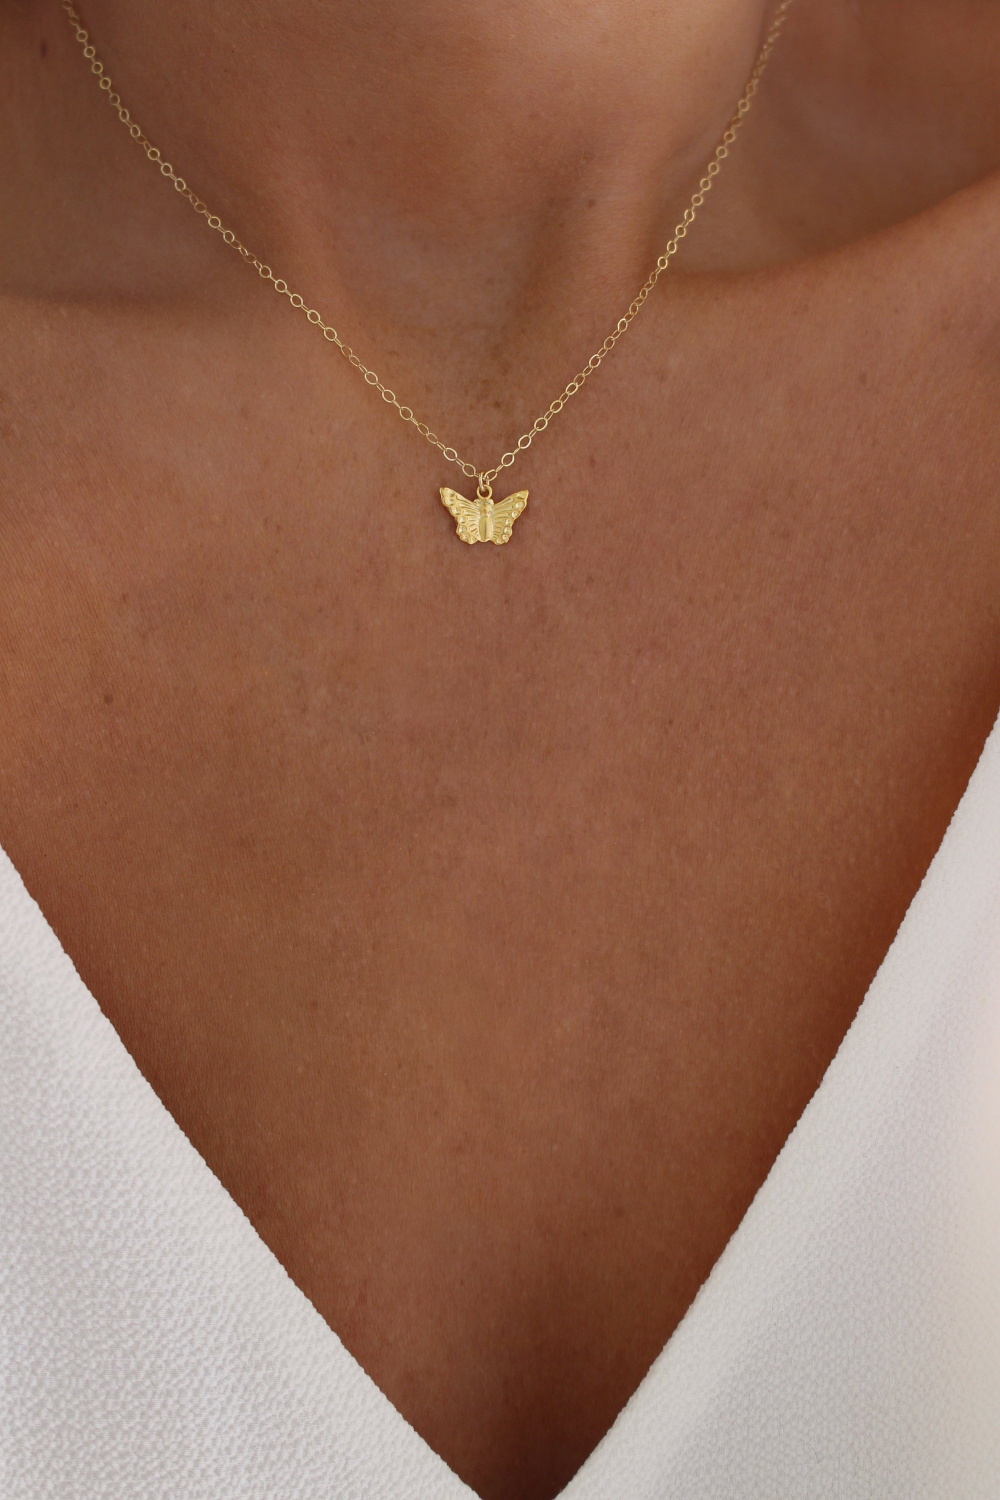 Delicate CZ butterfly Layering Necklace Dainty butterfly Charm Choker Necklace Dangling necklace Gold dangle Minimalist Simple Necklace